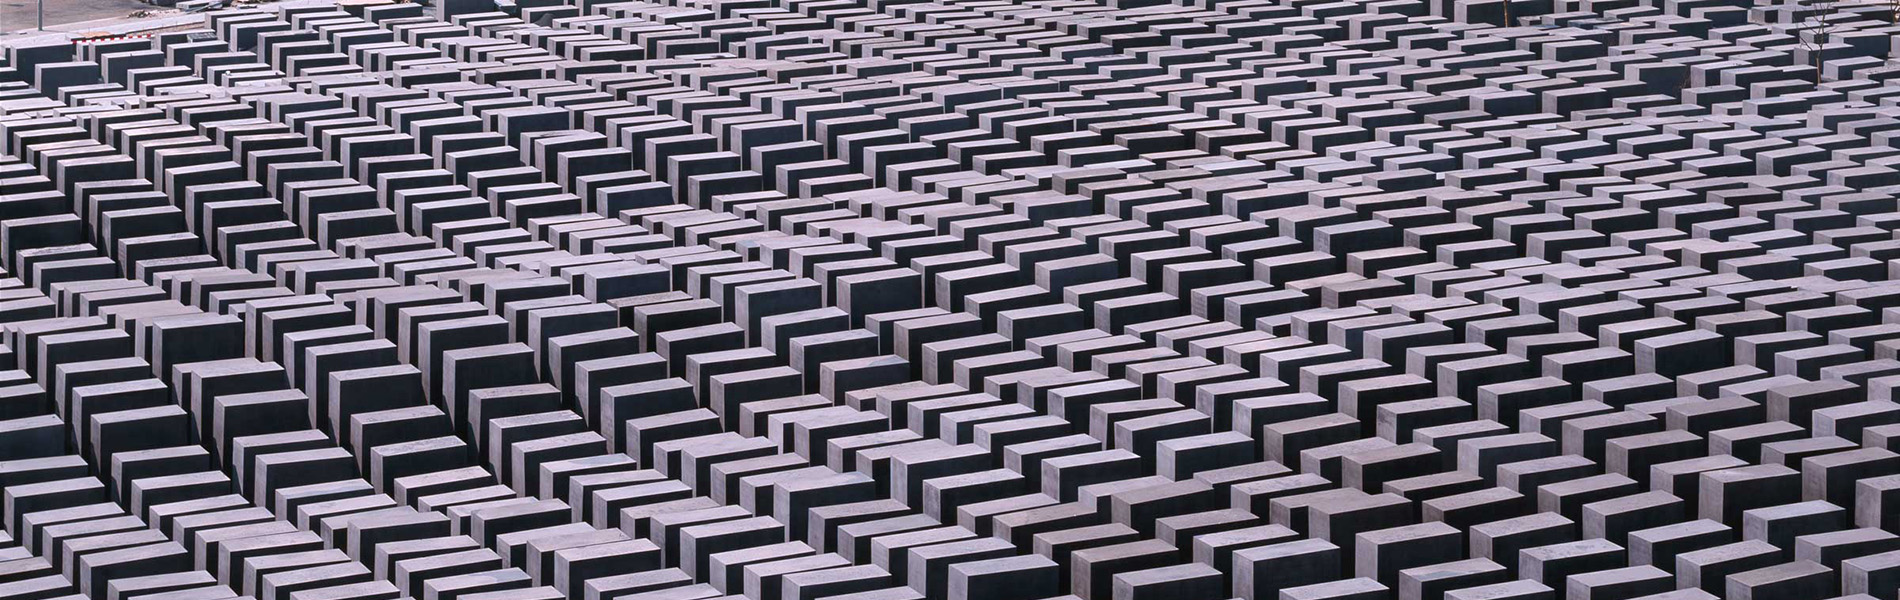 A field of undulating grey blocks extends beyond the frame in all directions